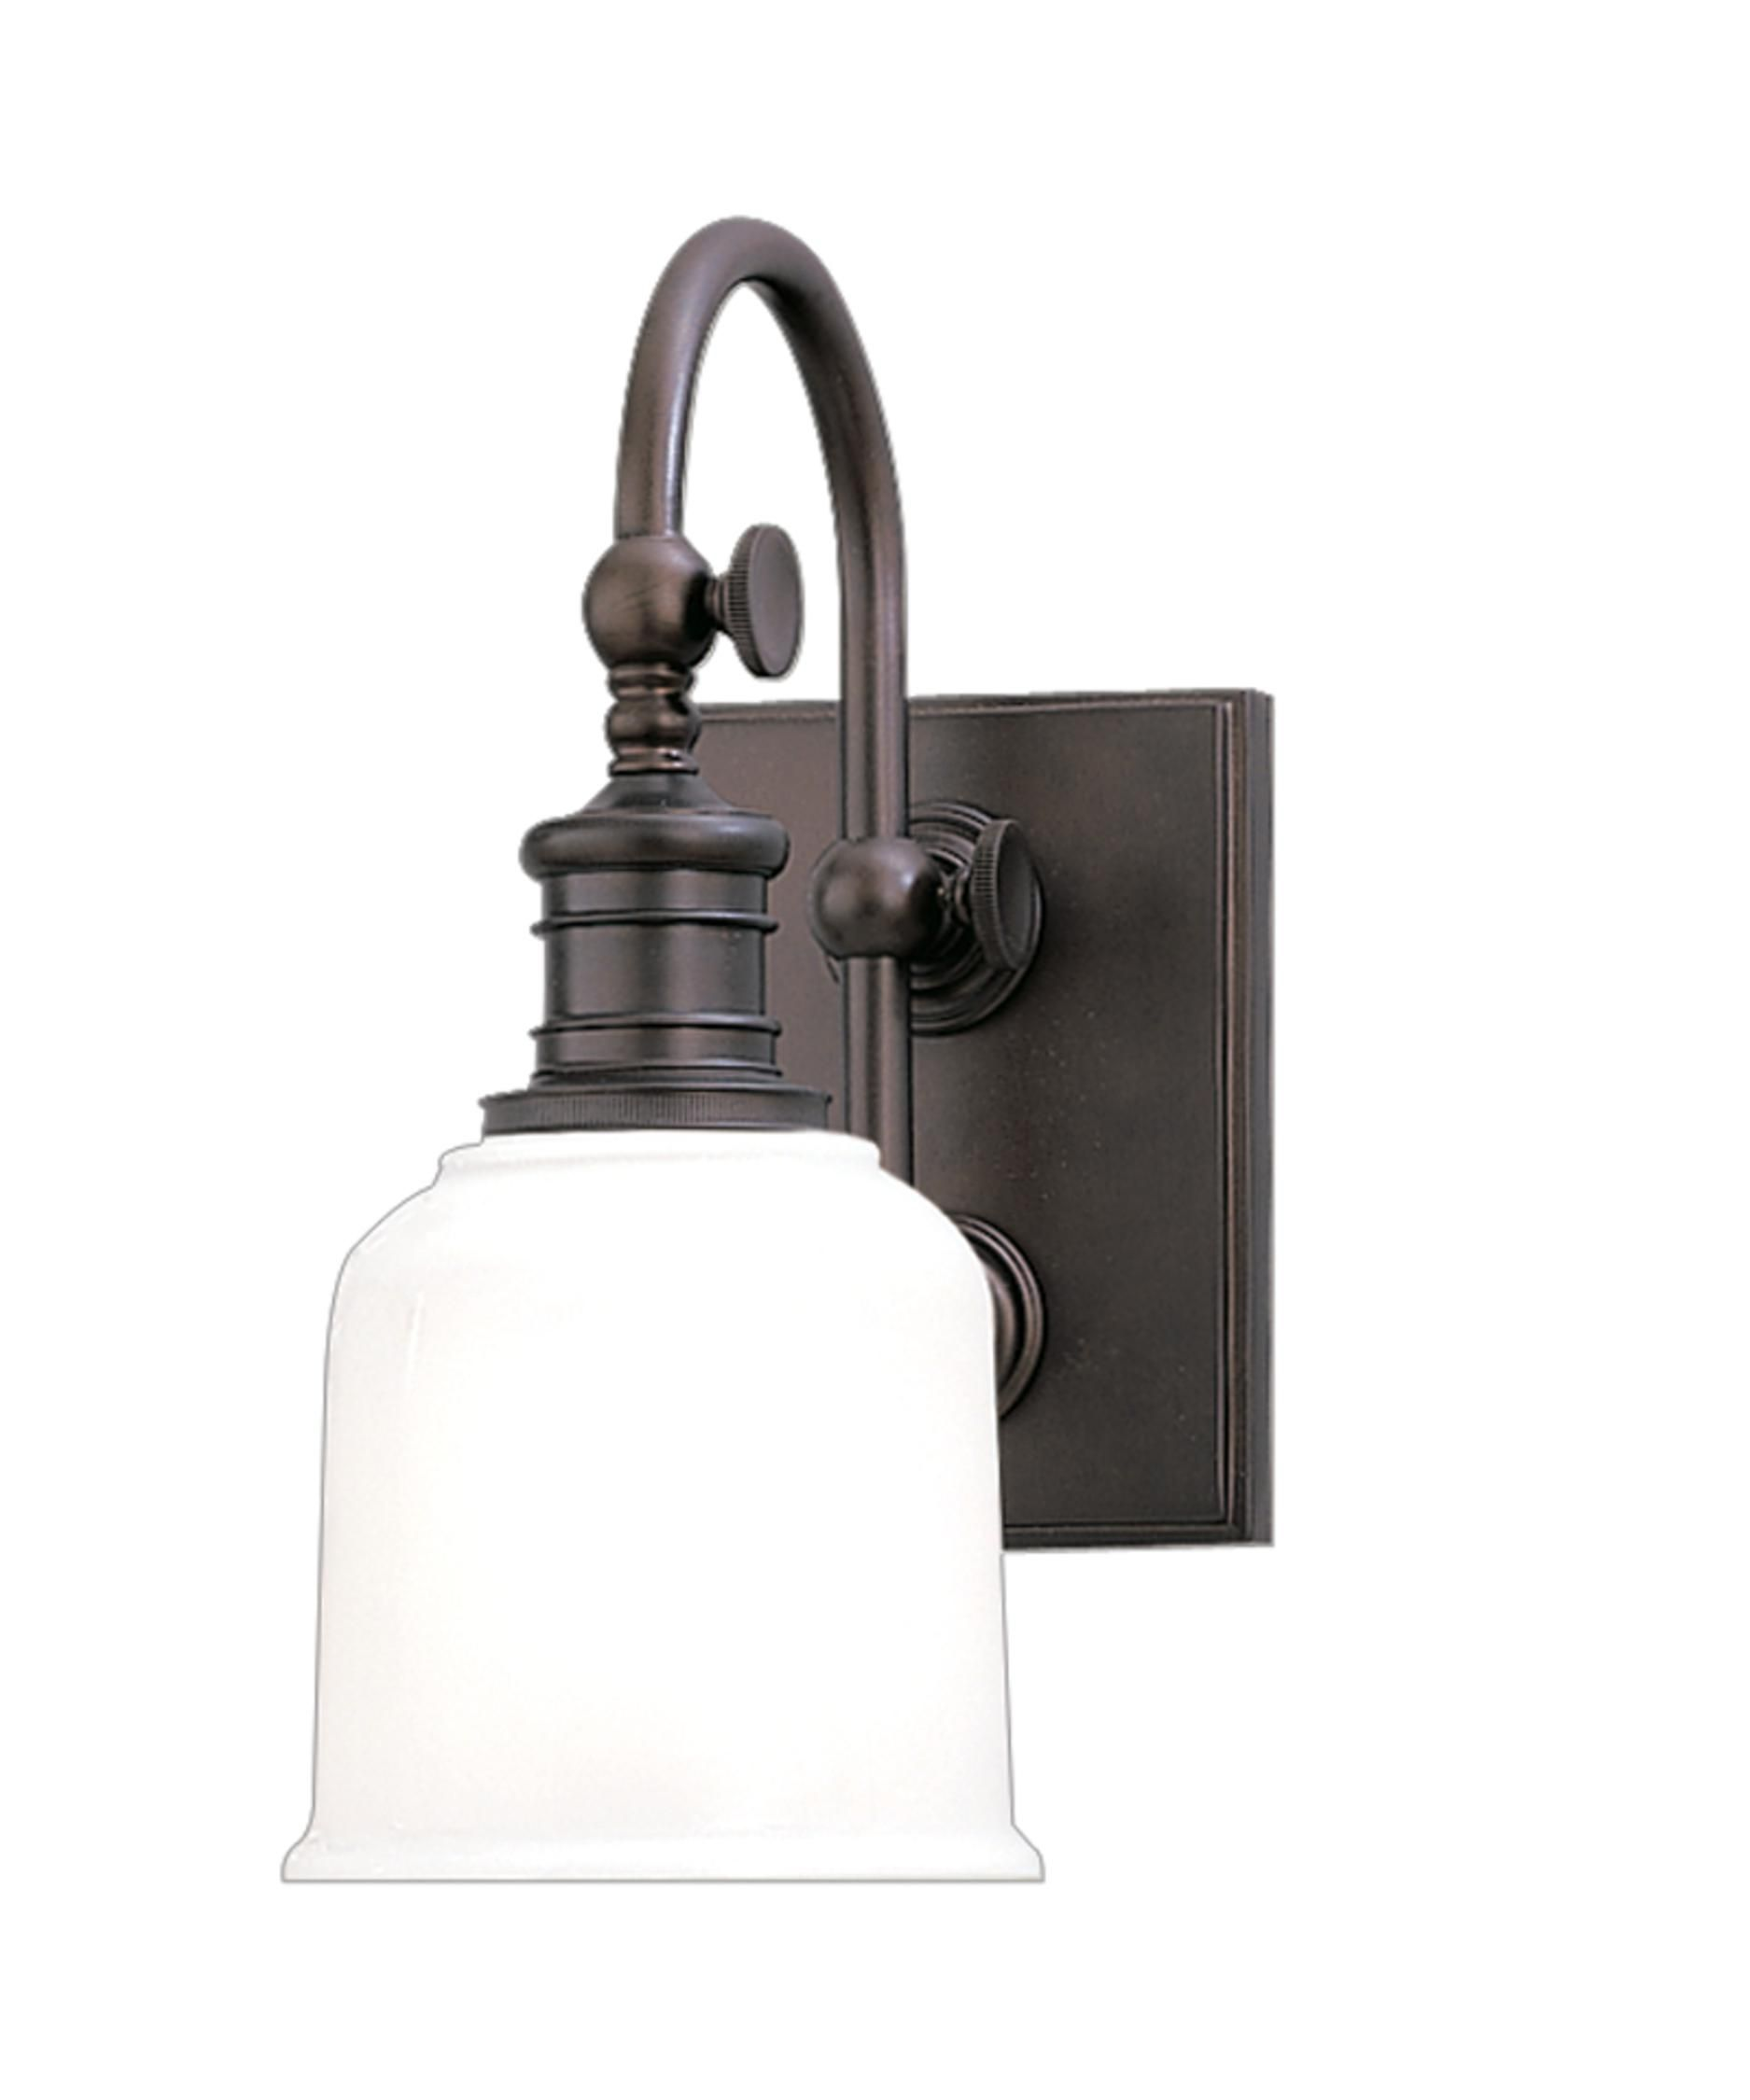 bathroom full designs depot kitchen fixtures light new two vintage nickel fixture home lighting ceiling chrome lowes of with size me fan menards old uk vanity brushed hang